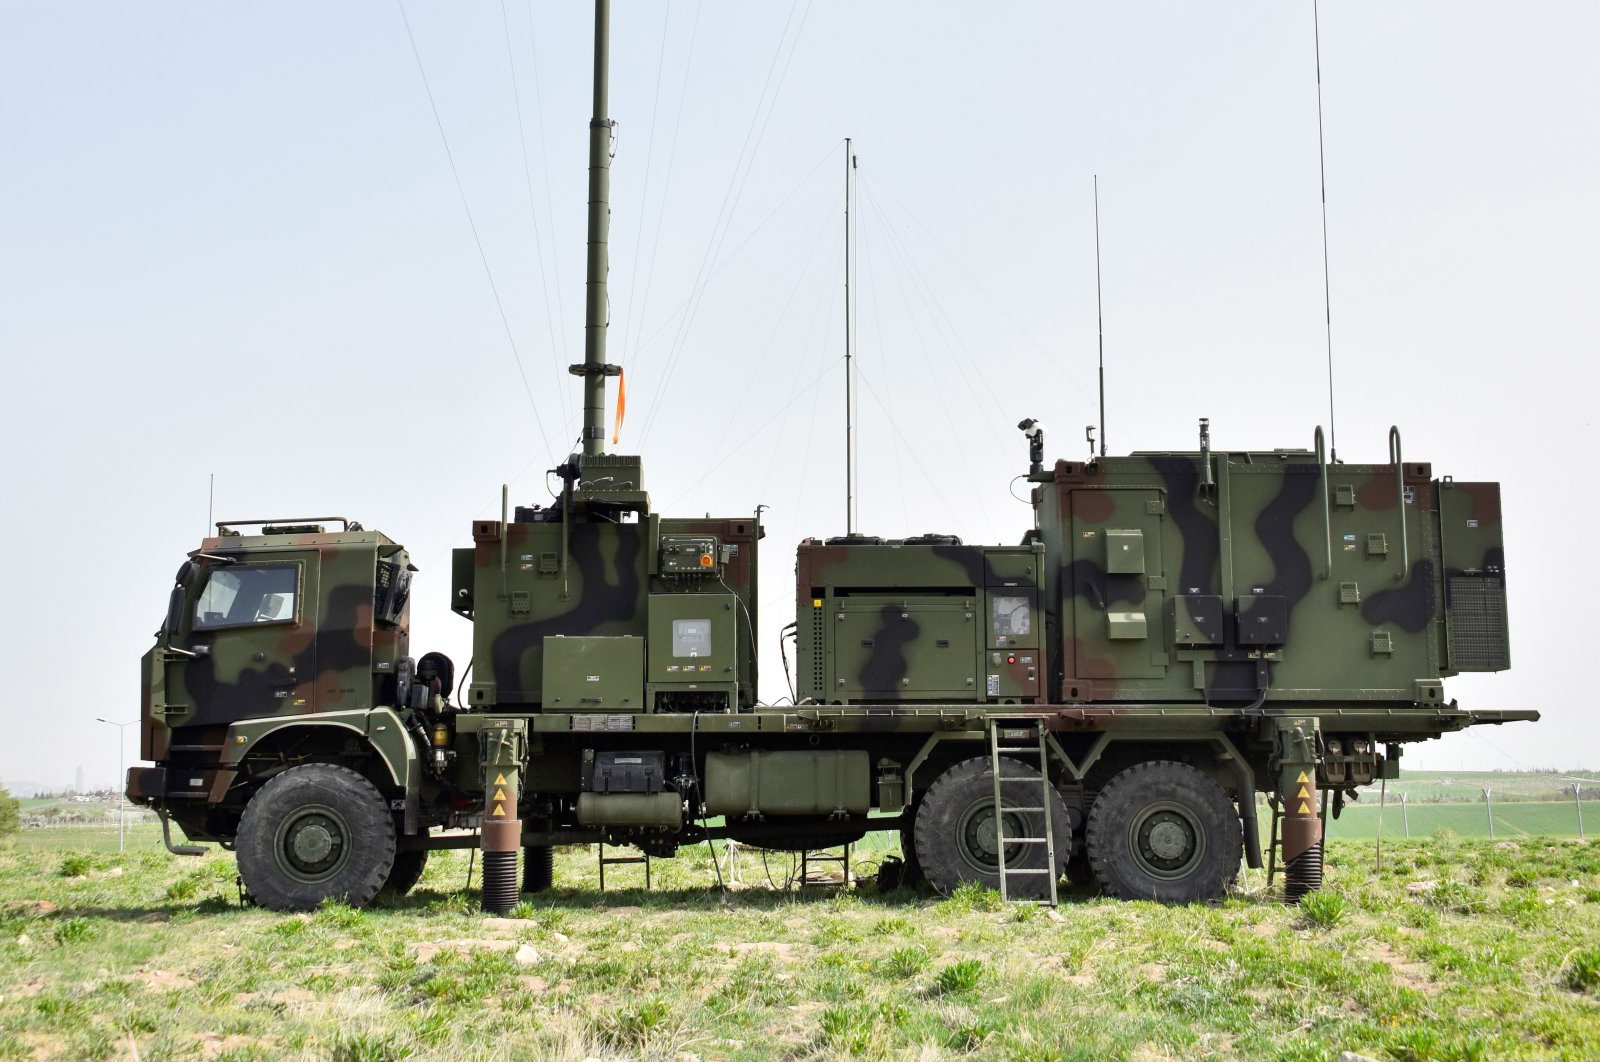 Aselsan-developed Sancak electronic warfare system seen in this photo provided on July 11, 2021. (AA Photo)